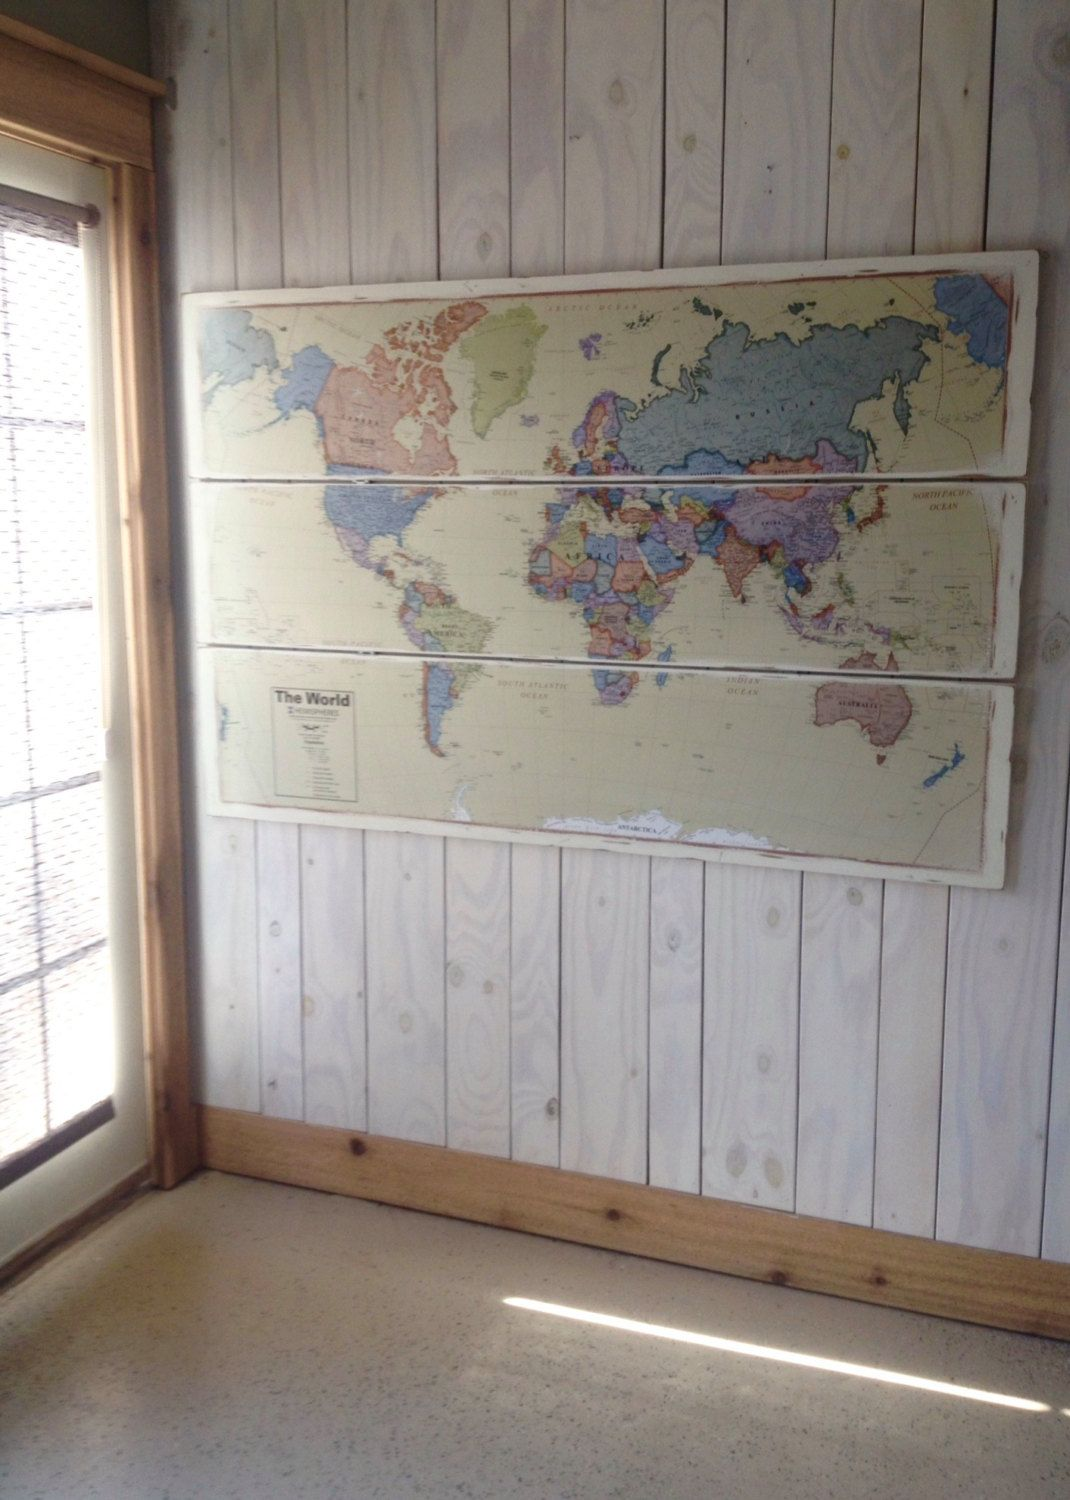 Huge world map art rustic world map vintage style colorful world huge world map art rustic world map vintage style colorful world map wall decor gumiabroncs Gallery